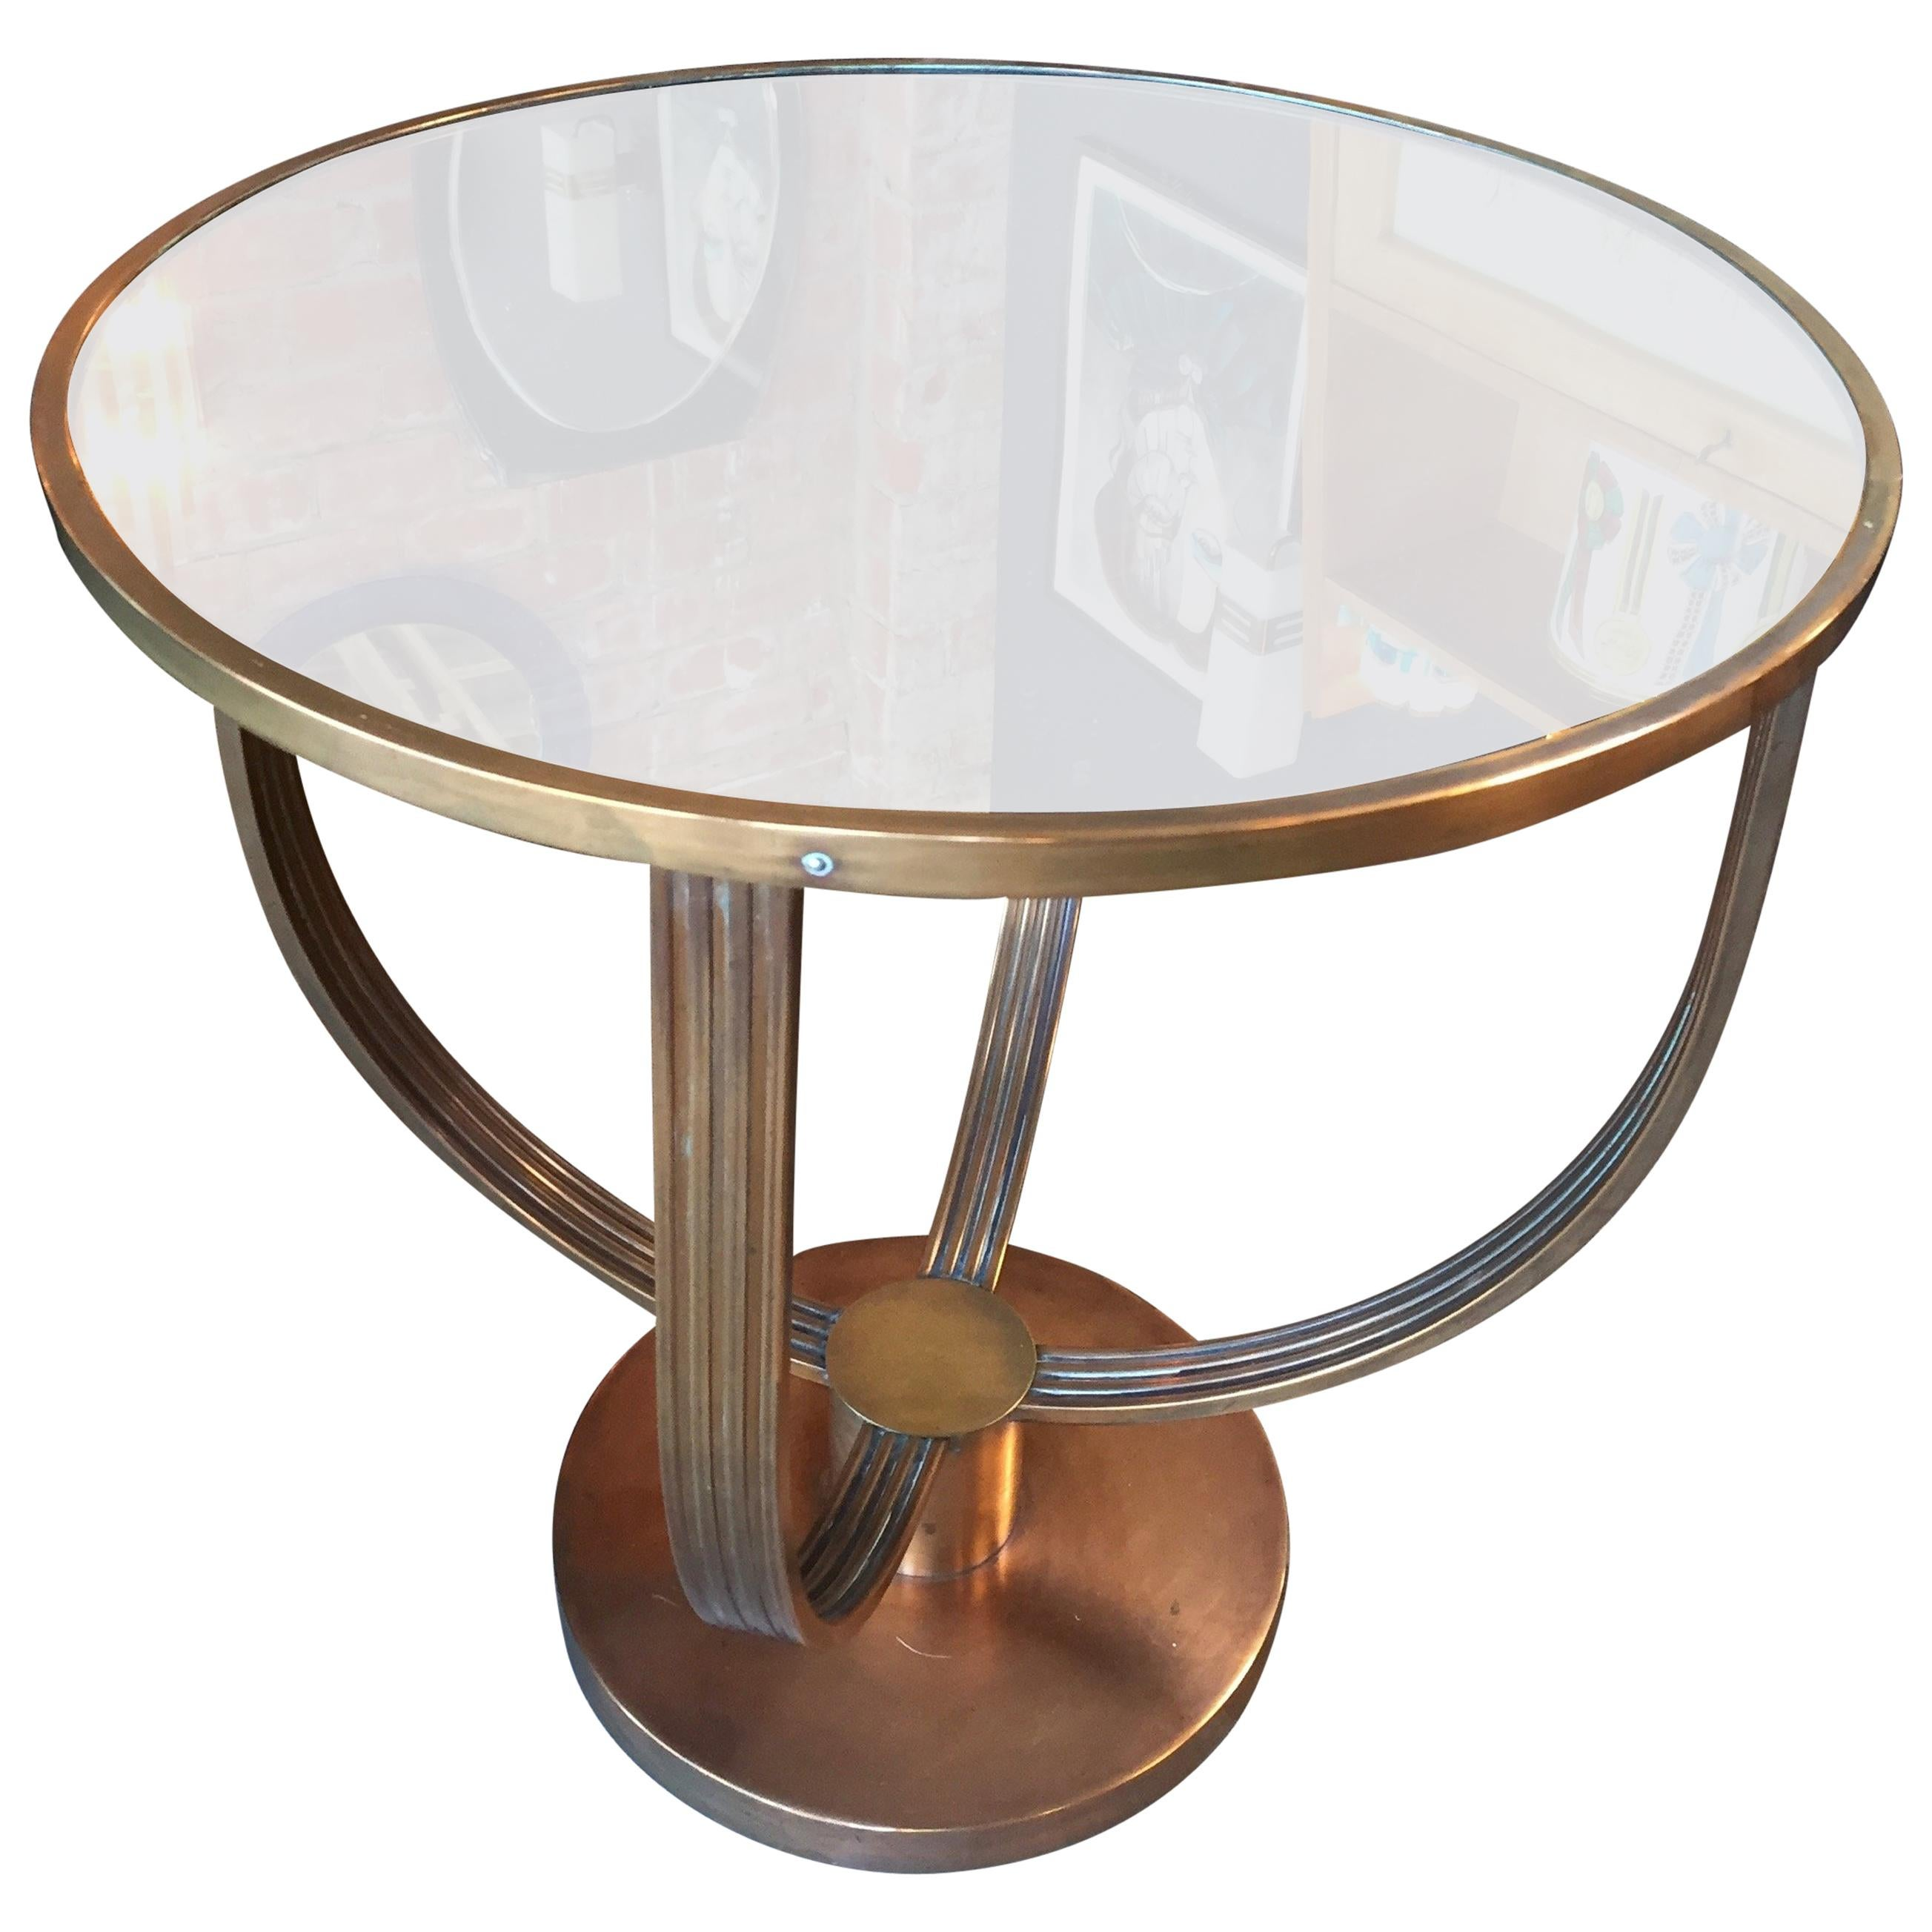 French Art Deco Coffee Table, Attributed To Jean Michel Frank, 1930s For  Sale